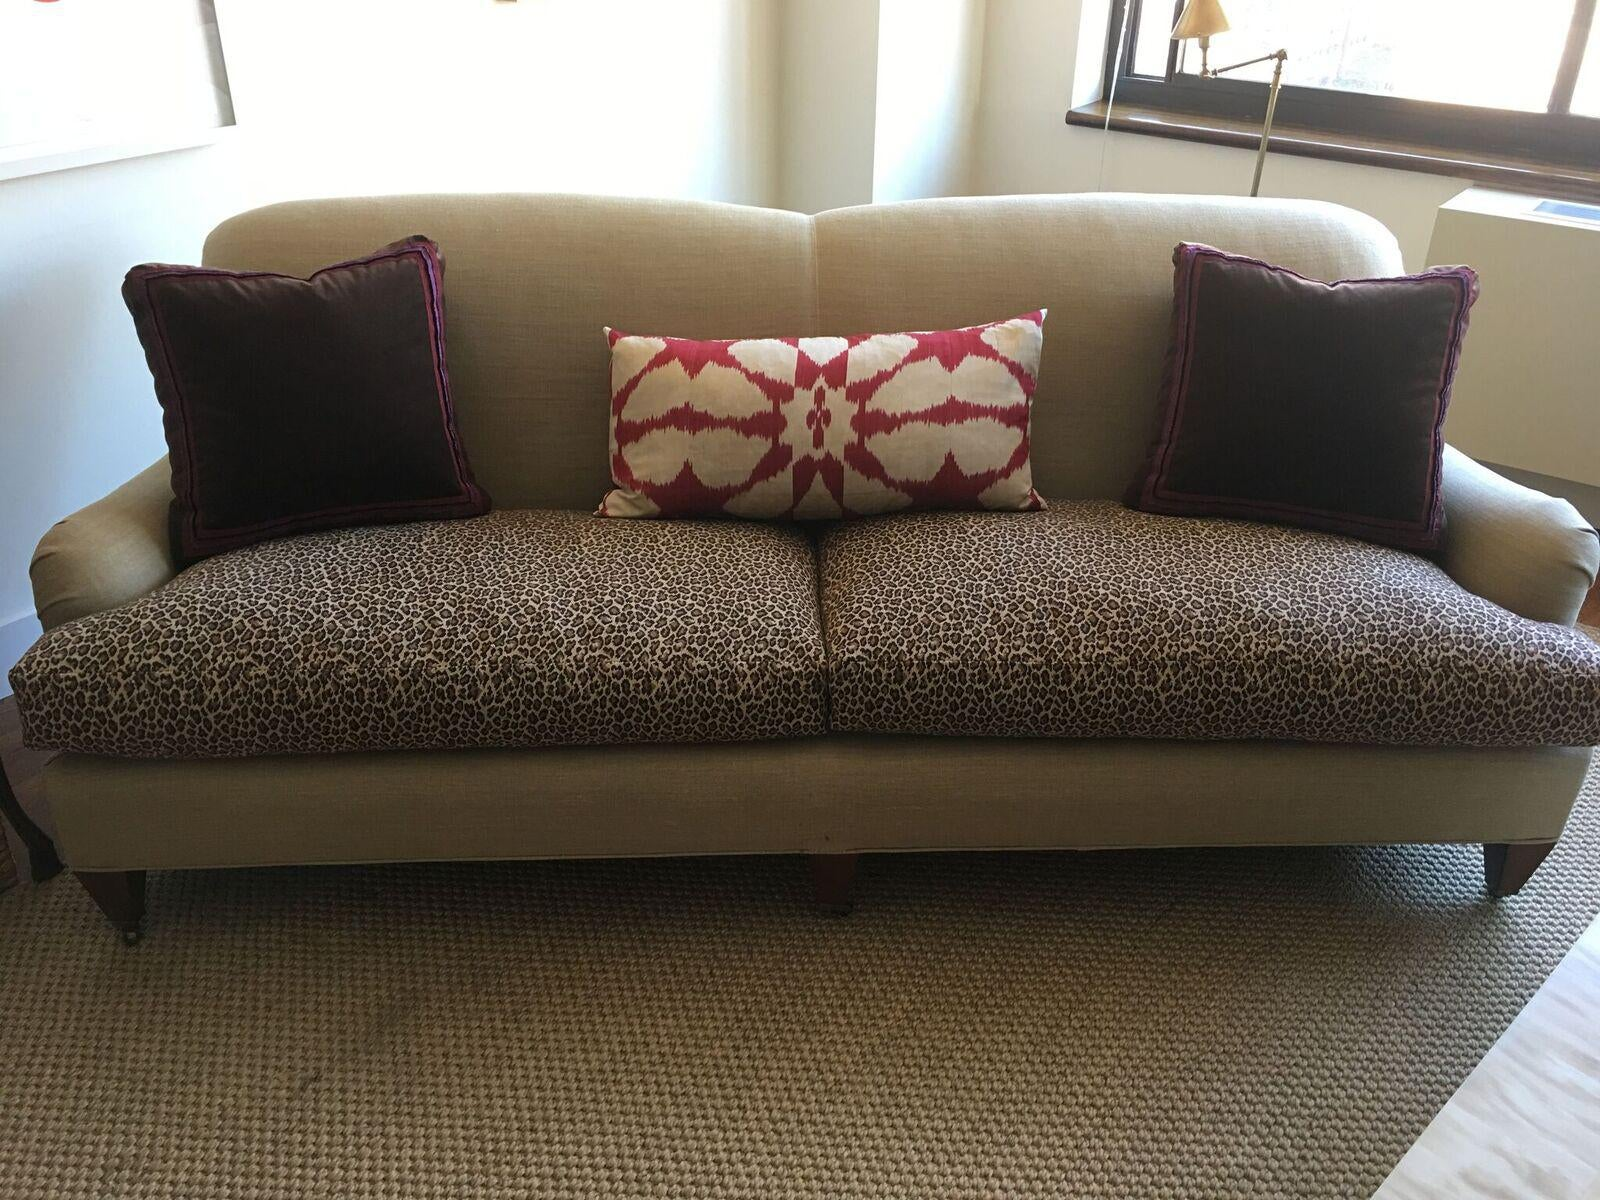 Custom Linen Covered Sofa With Leopard Print Seat Cushions   Image 4 Of 12